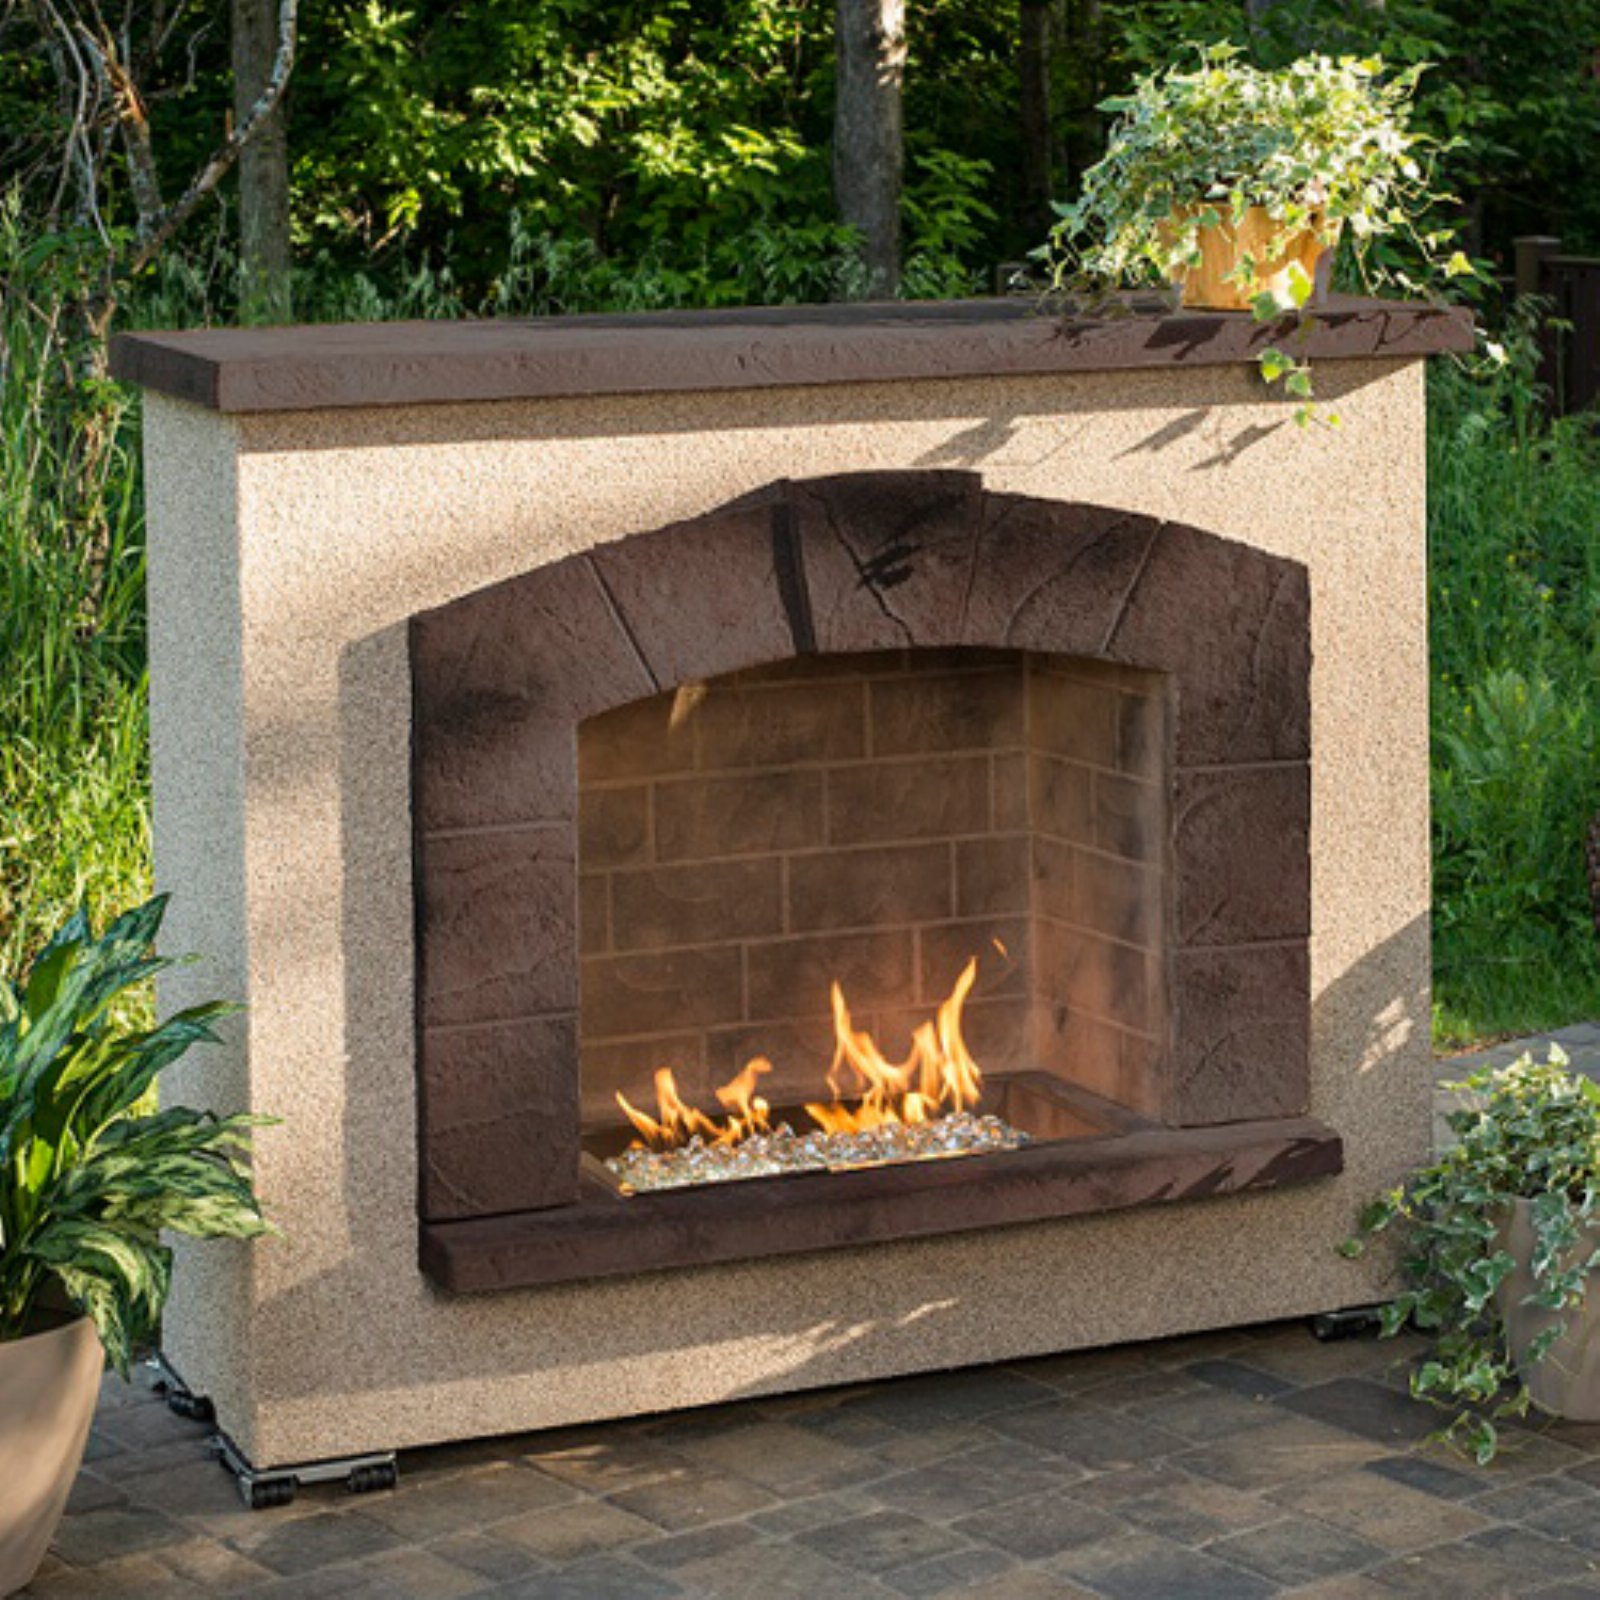 Outdoor GreatRoom Stone Arch Fireplace